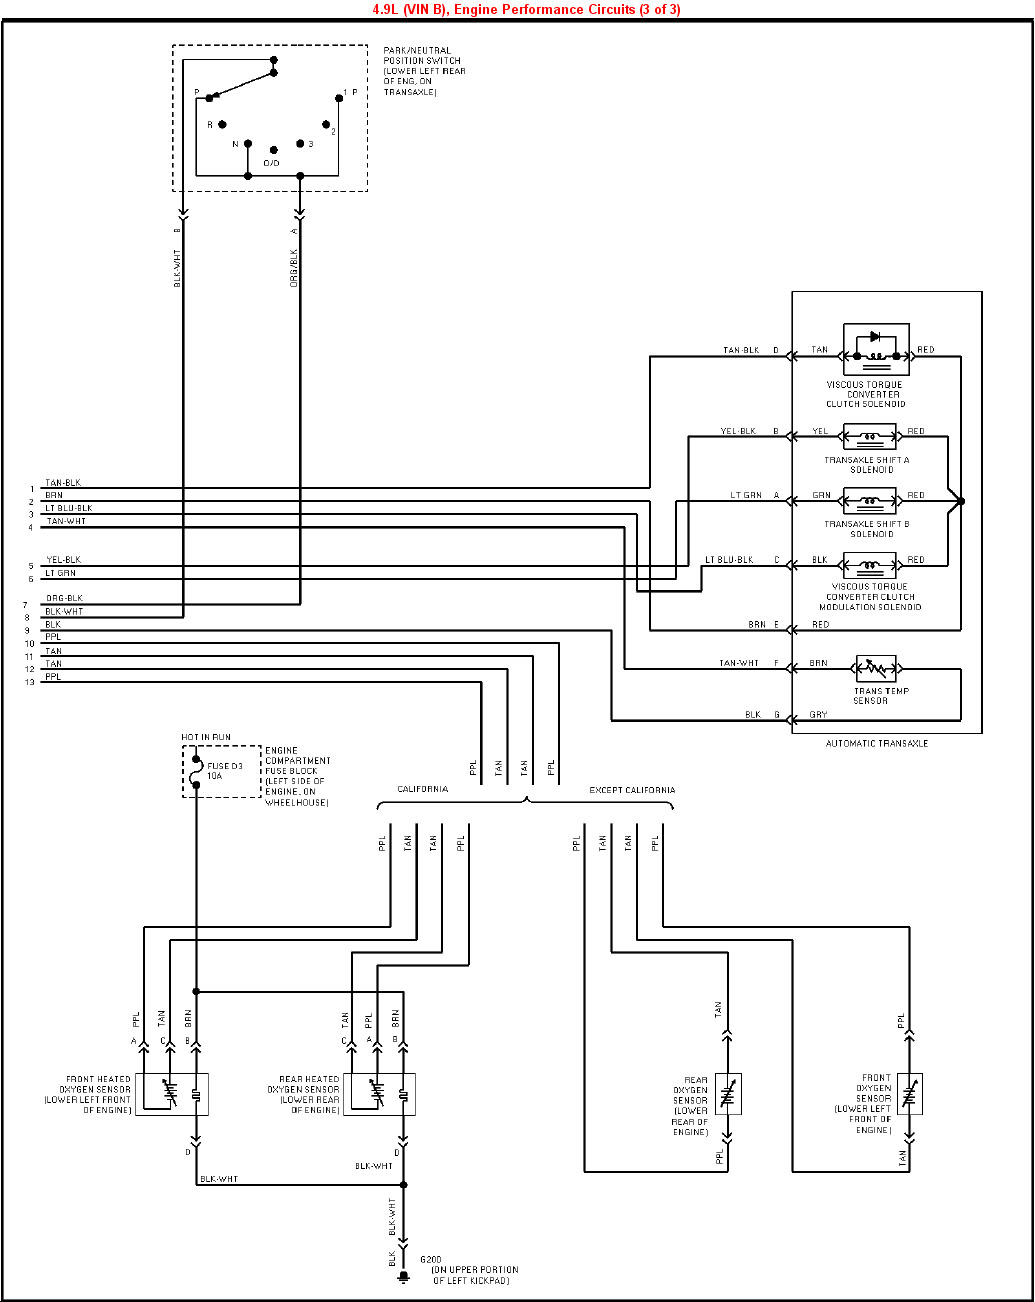 Fuse Box Diagram Cadillac Eldorado Wiring Library 1993 1990 Brougham Trusted Diagrams U2022 Rh Sivamuni Com Engine